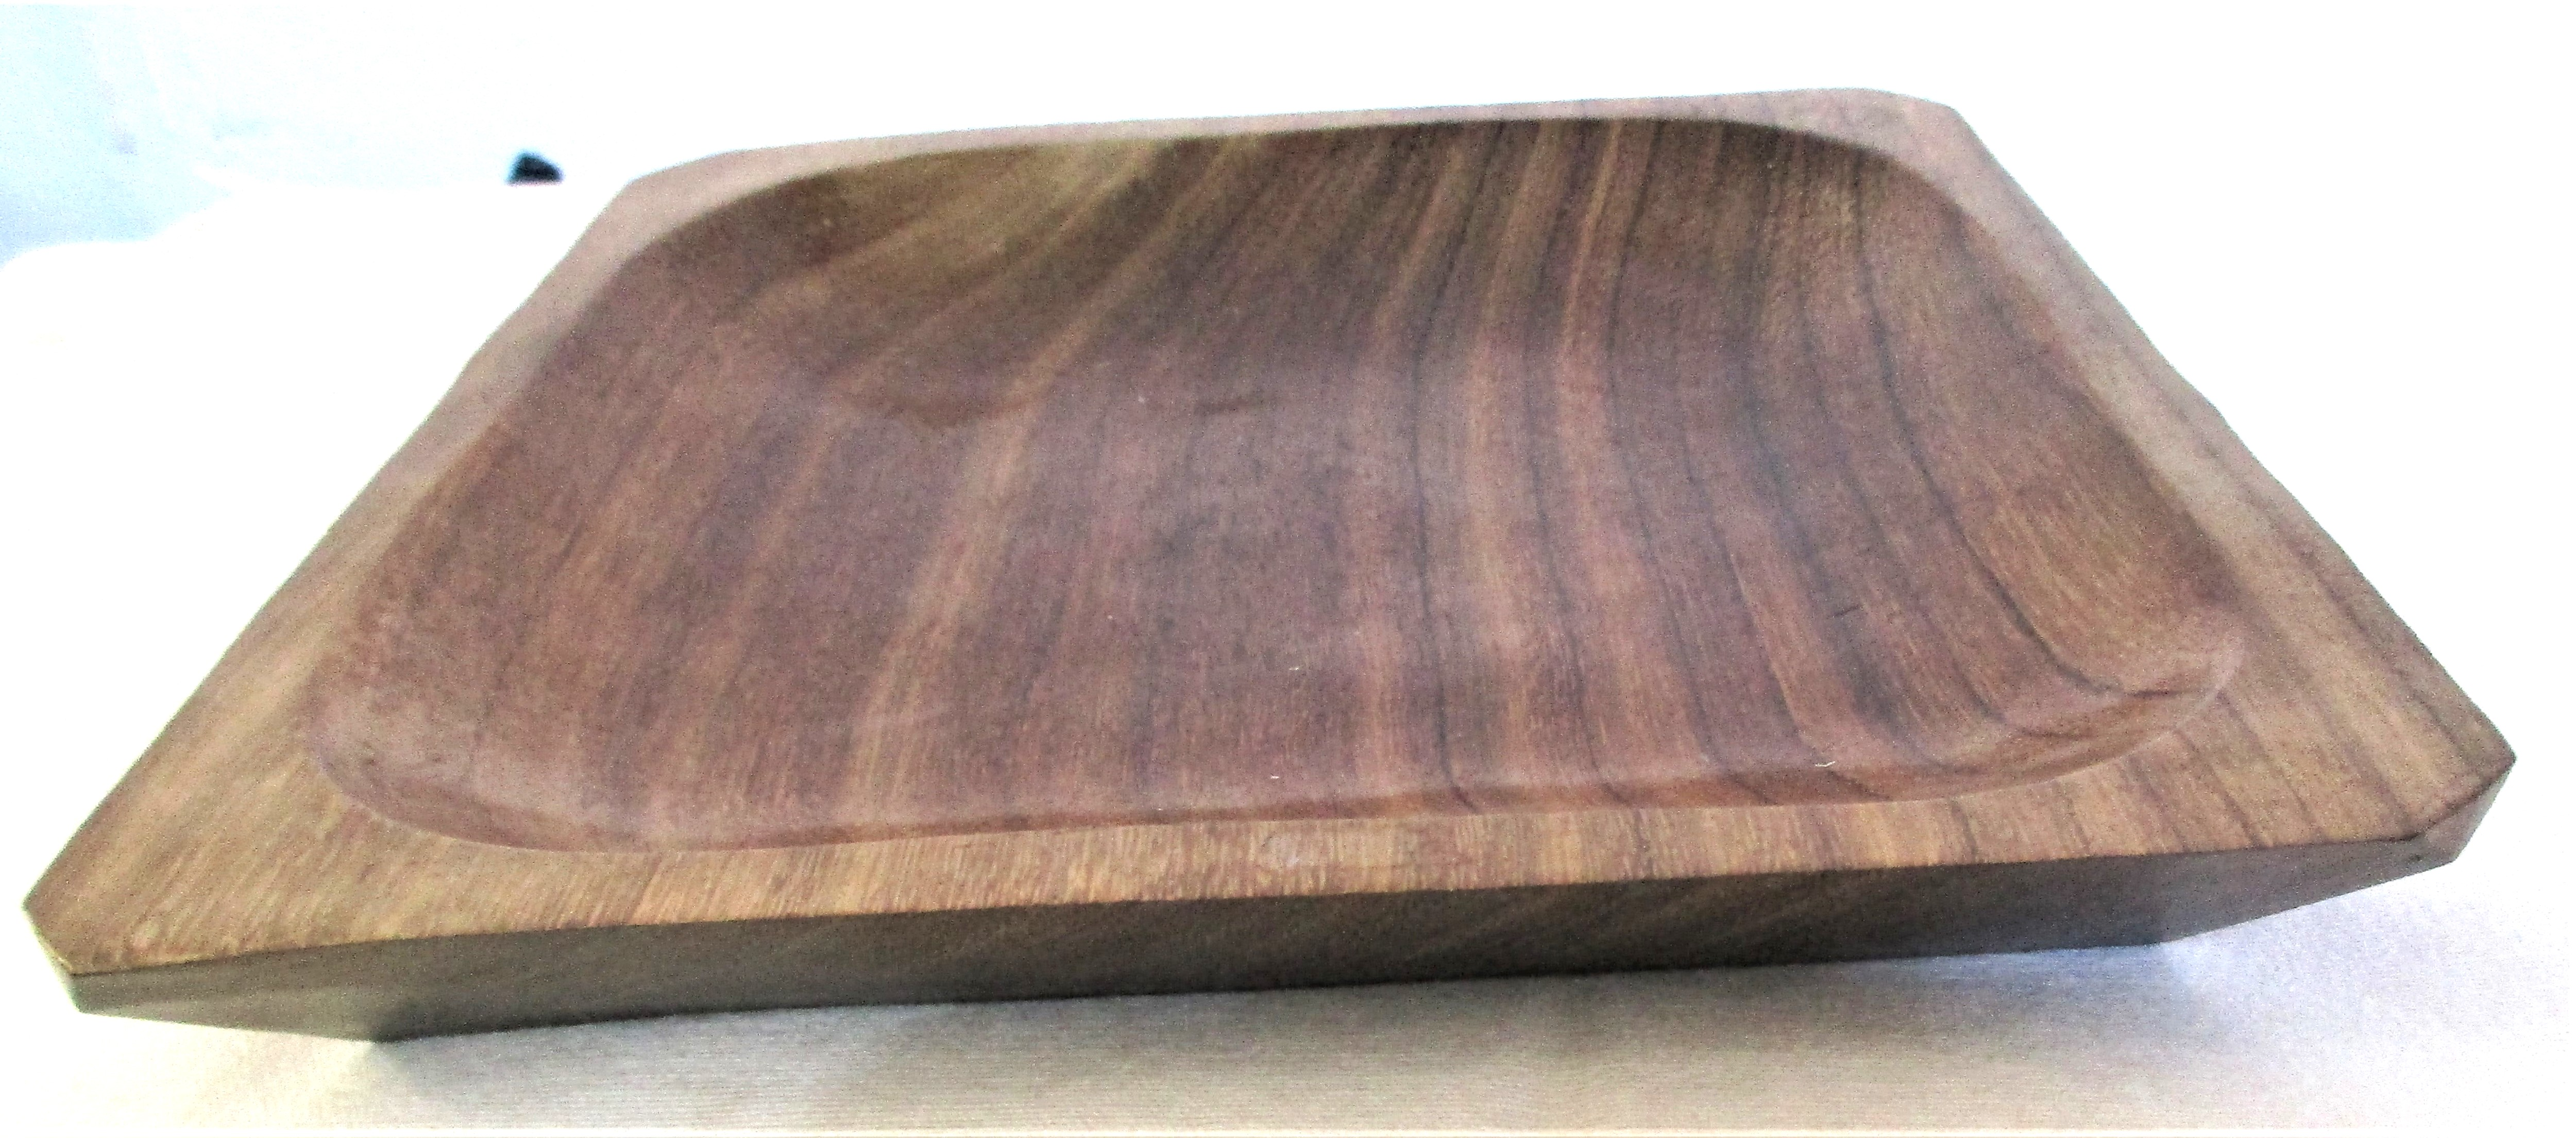 Hand carved hardwood dish from Indonesia. 20 x 20 x 3cm. New - Image 2 of 2